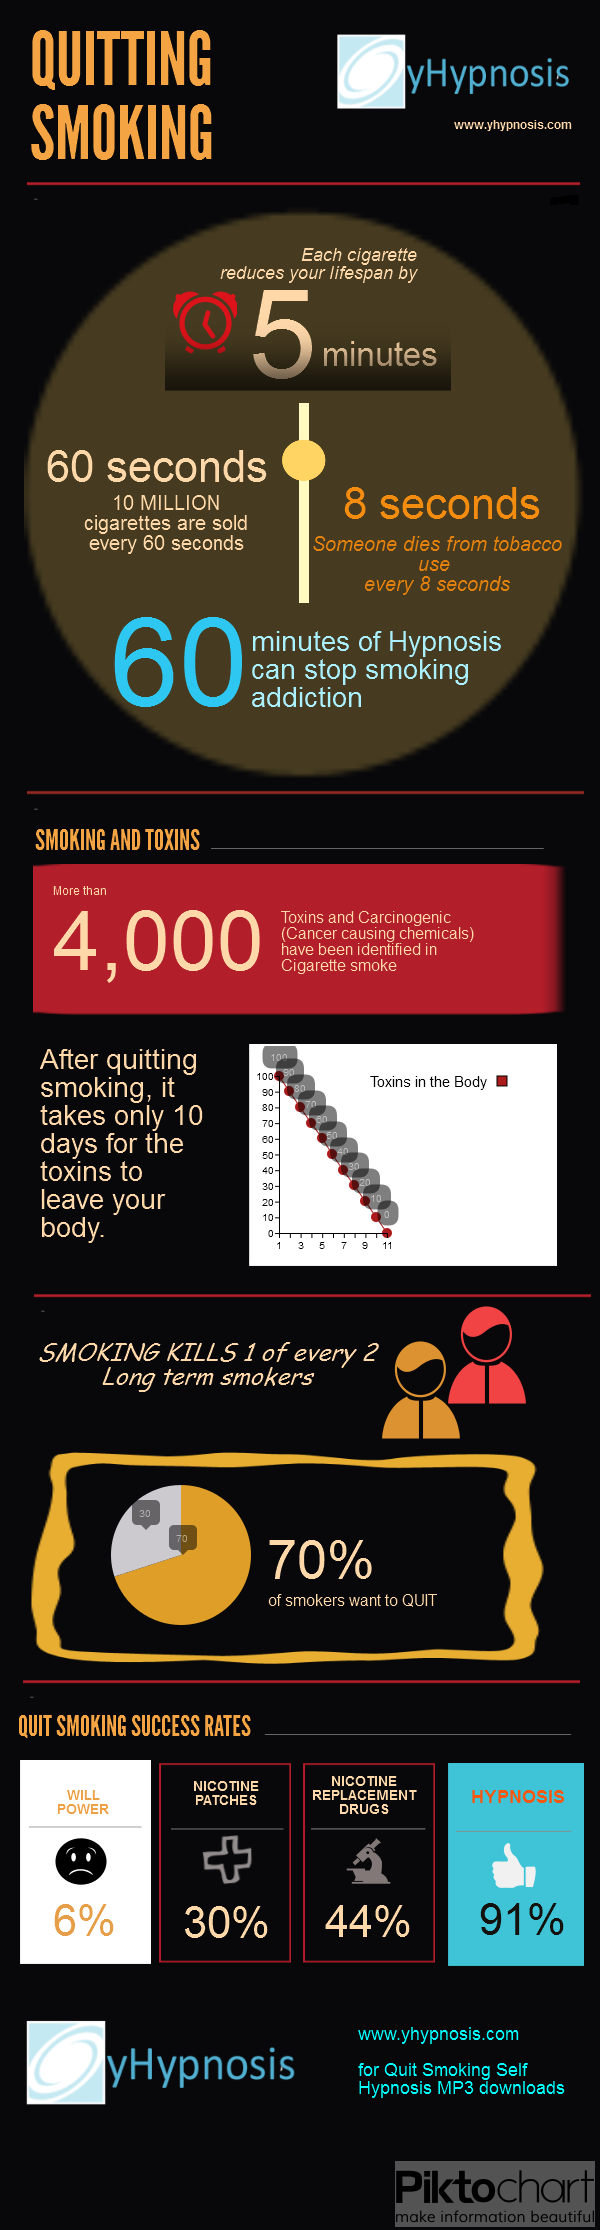 Quitting Smoking Infographic